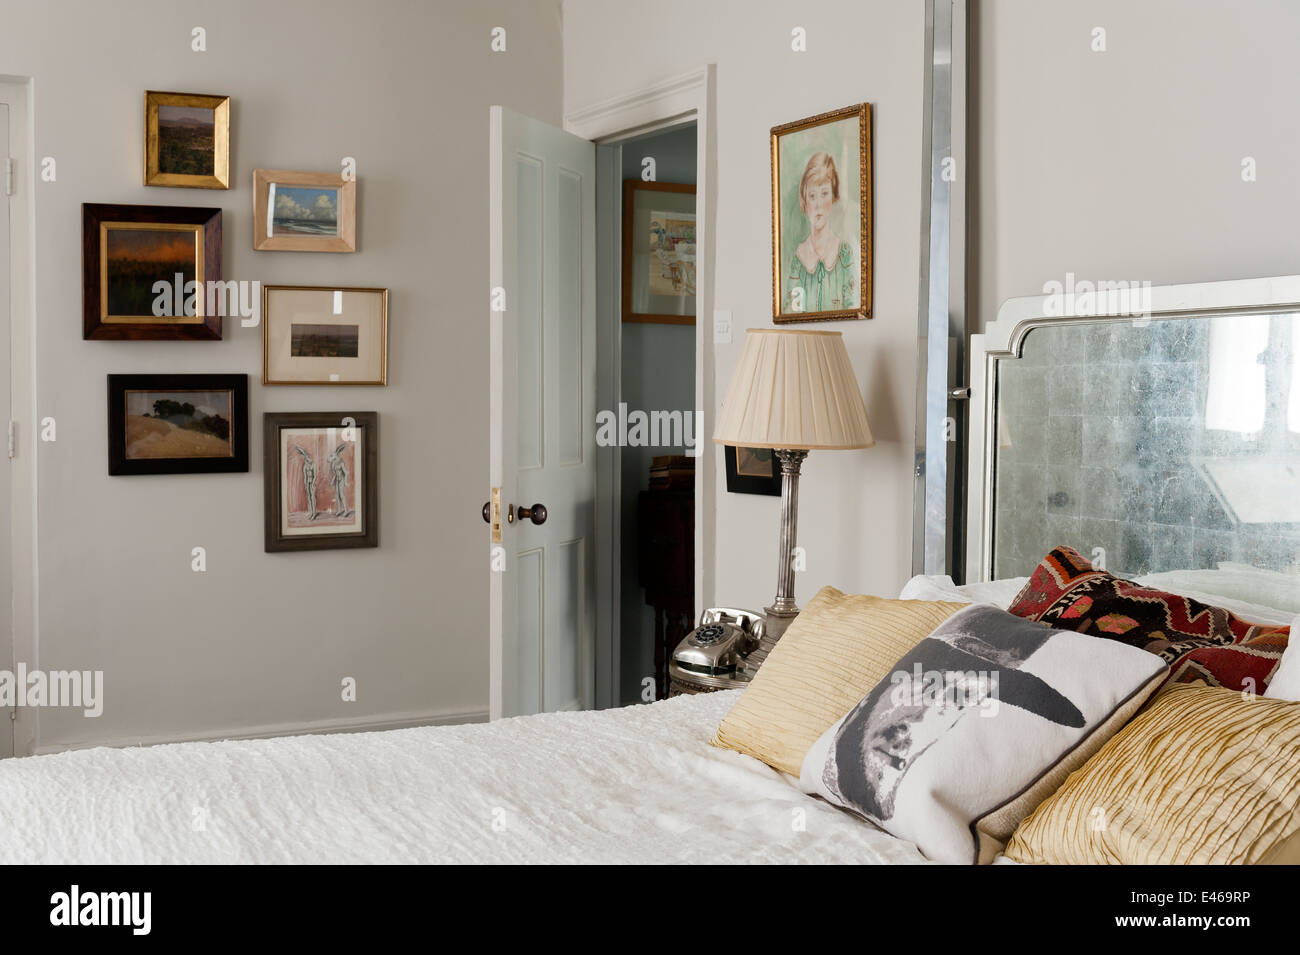 Clint Eastwood cushion on mirrored four poster bed from Julian Chichester in bedroom with assorted artwork - Stock Image